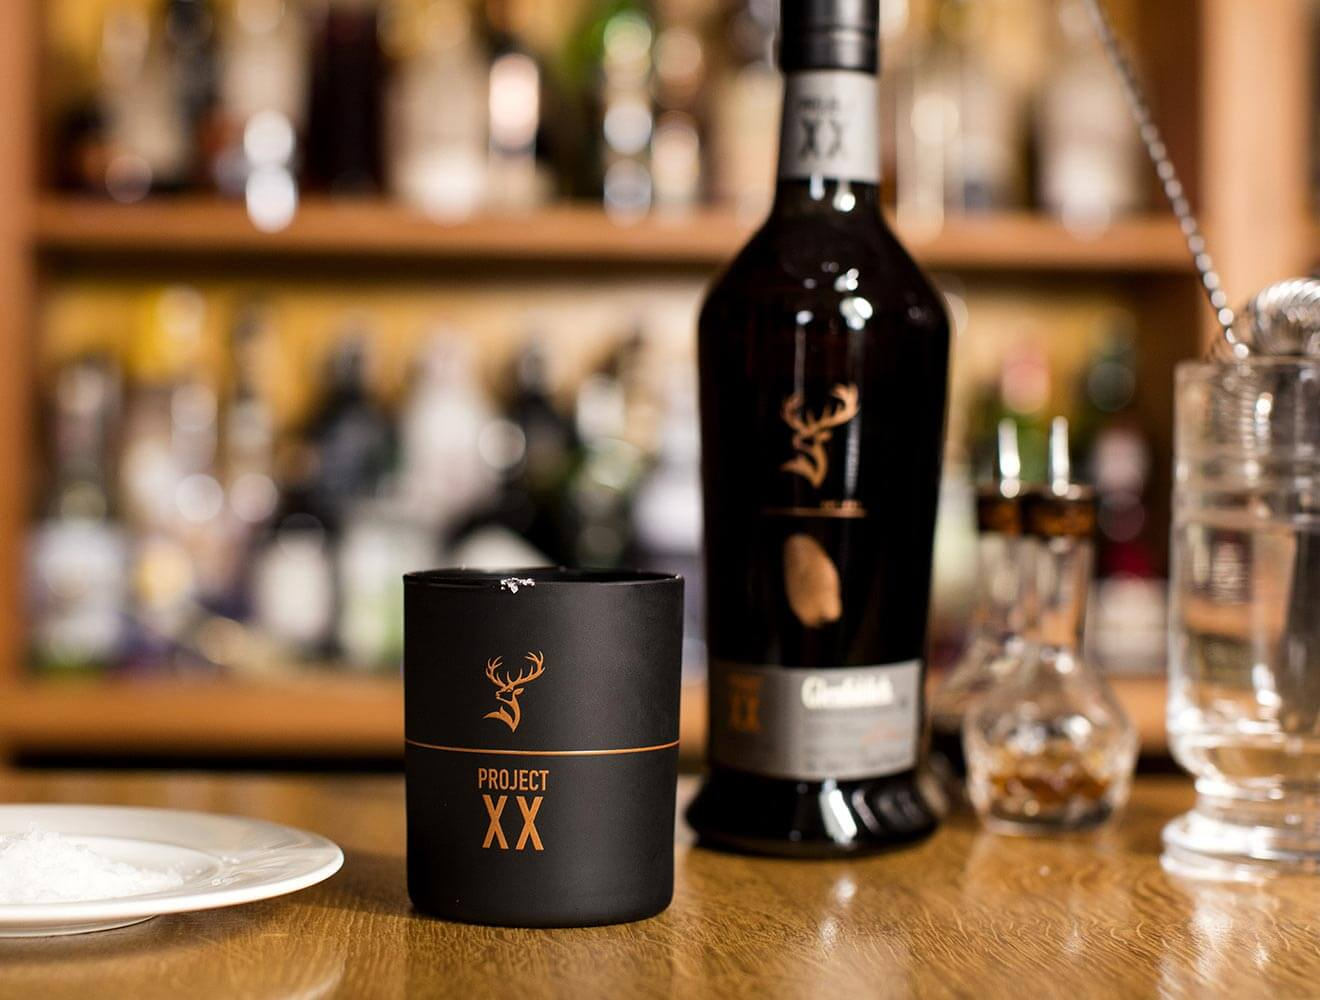 Glenfiddich Experimental Series Project XX bottle and glass